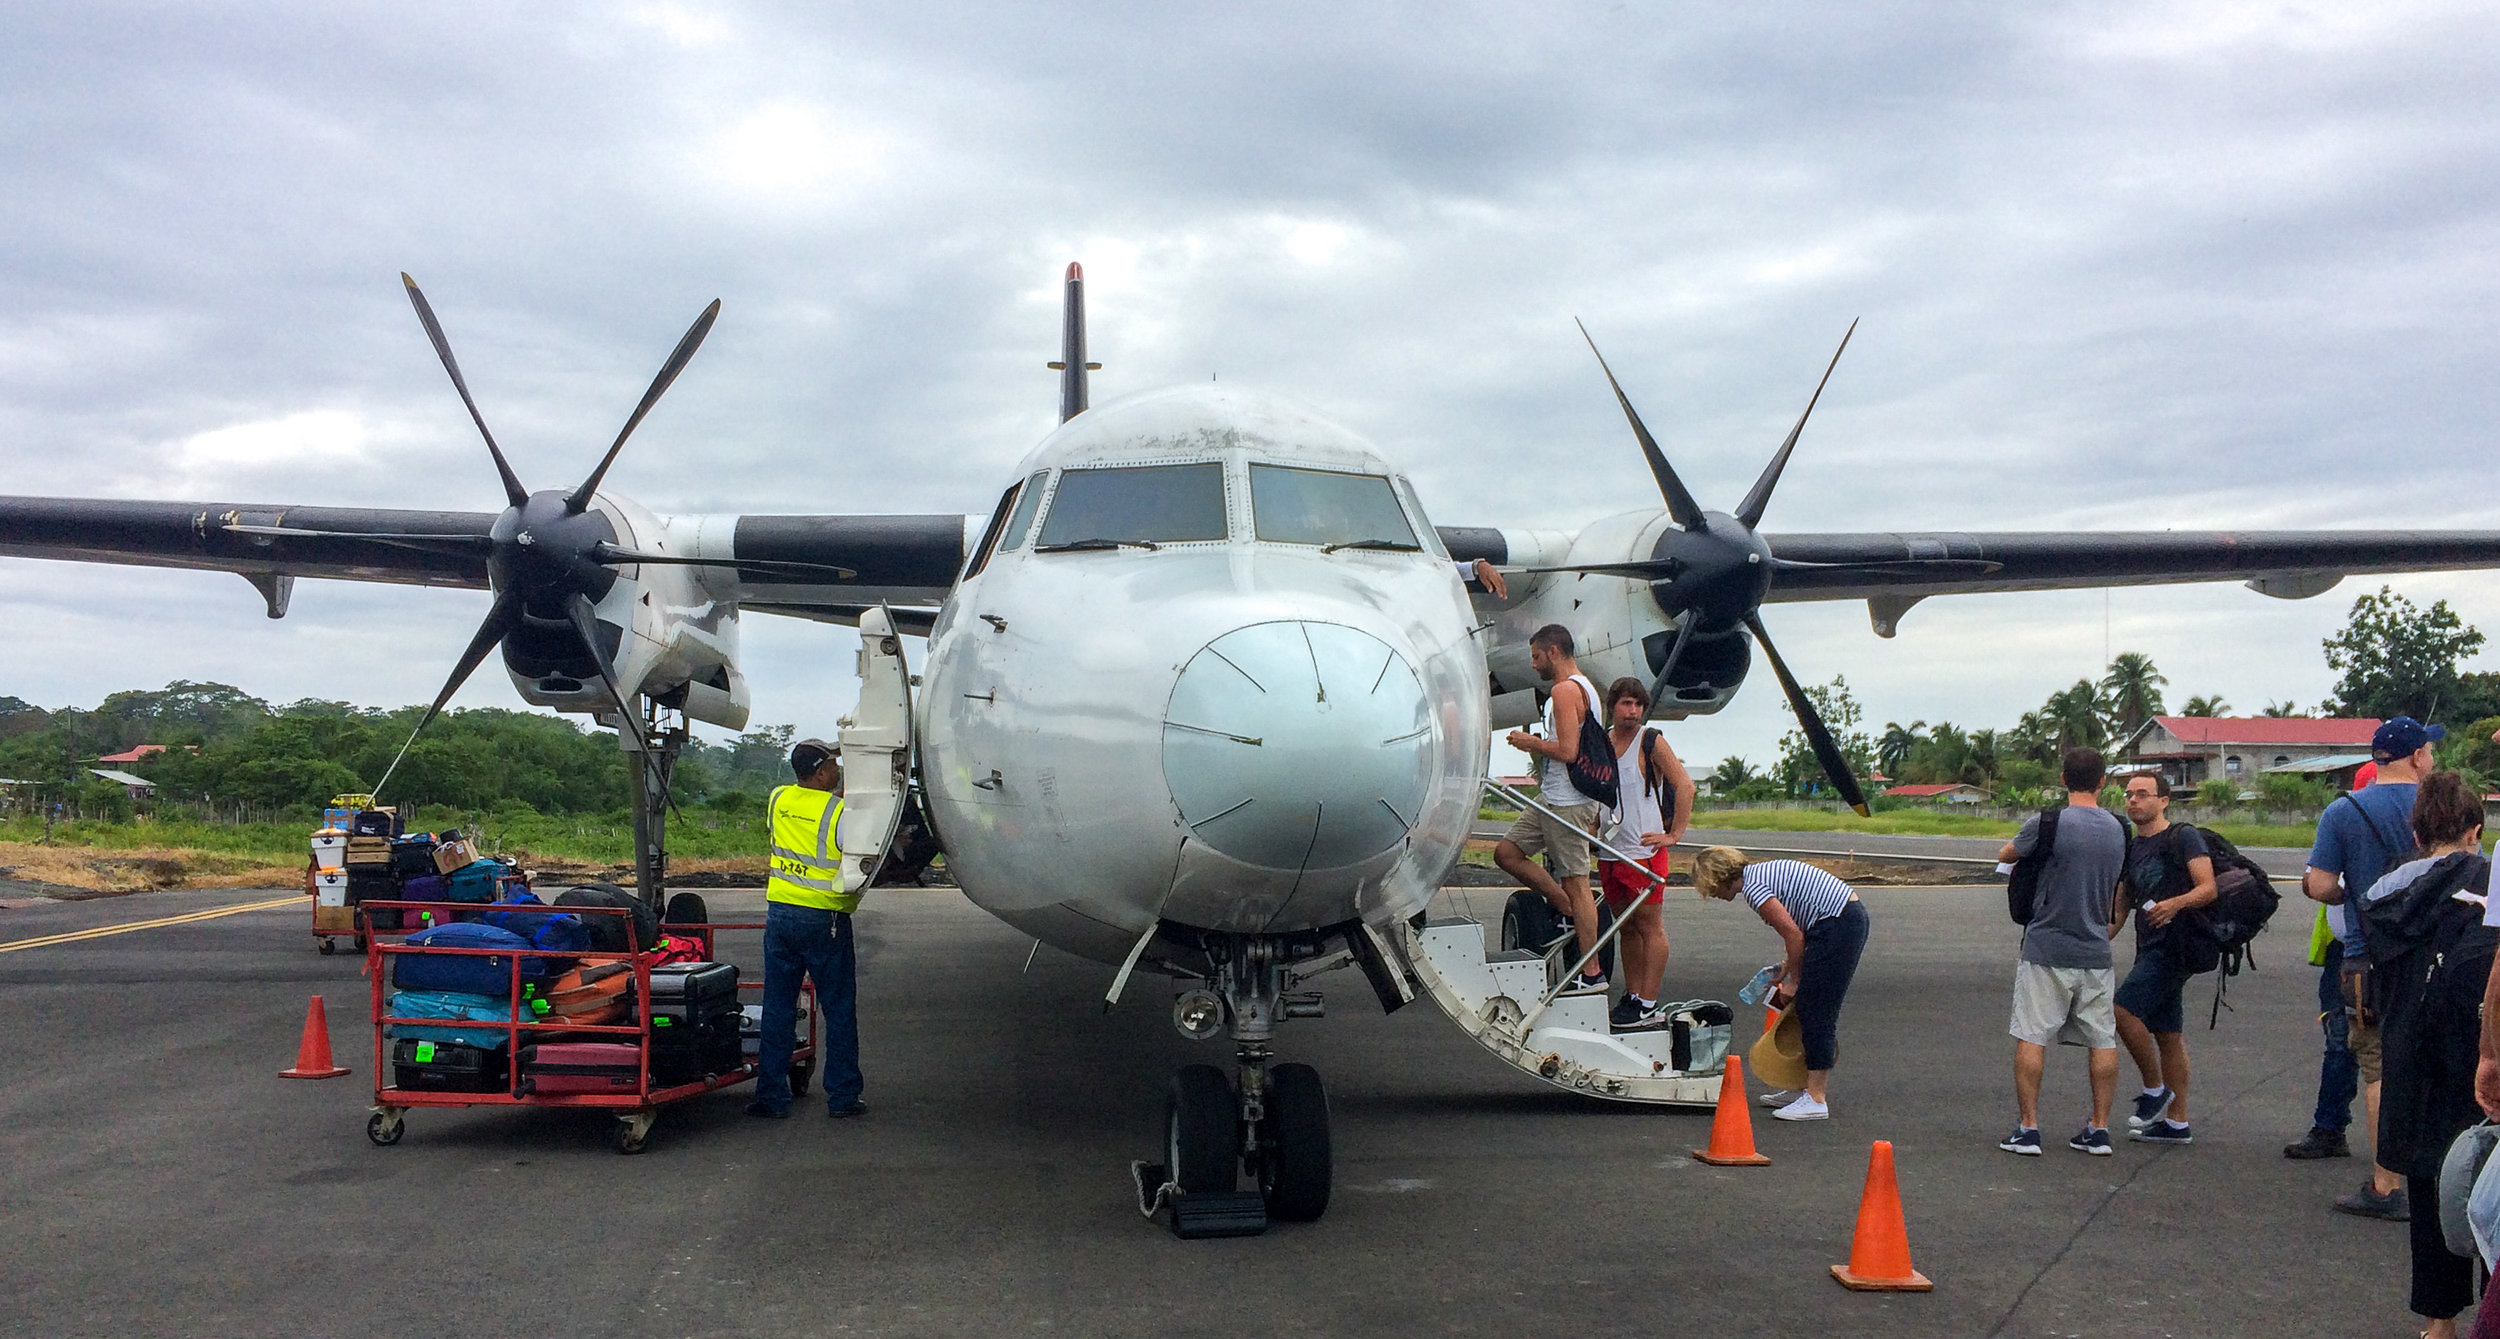 Now boarding on the tarmac, Panama Airlines, at the Bocas del Toro airport.